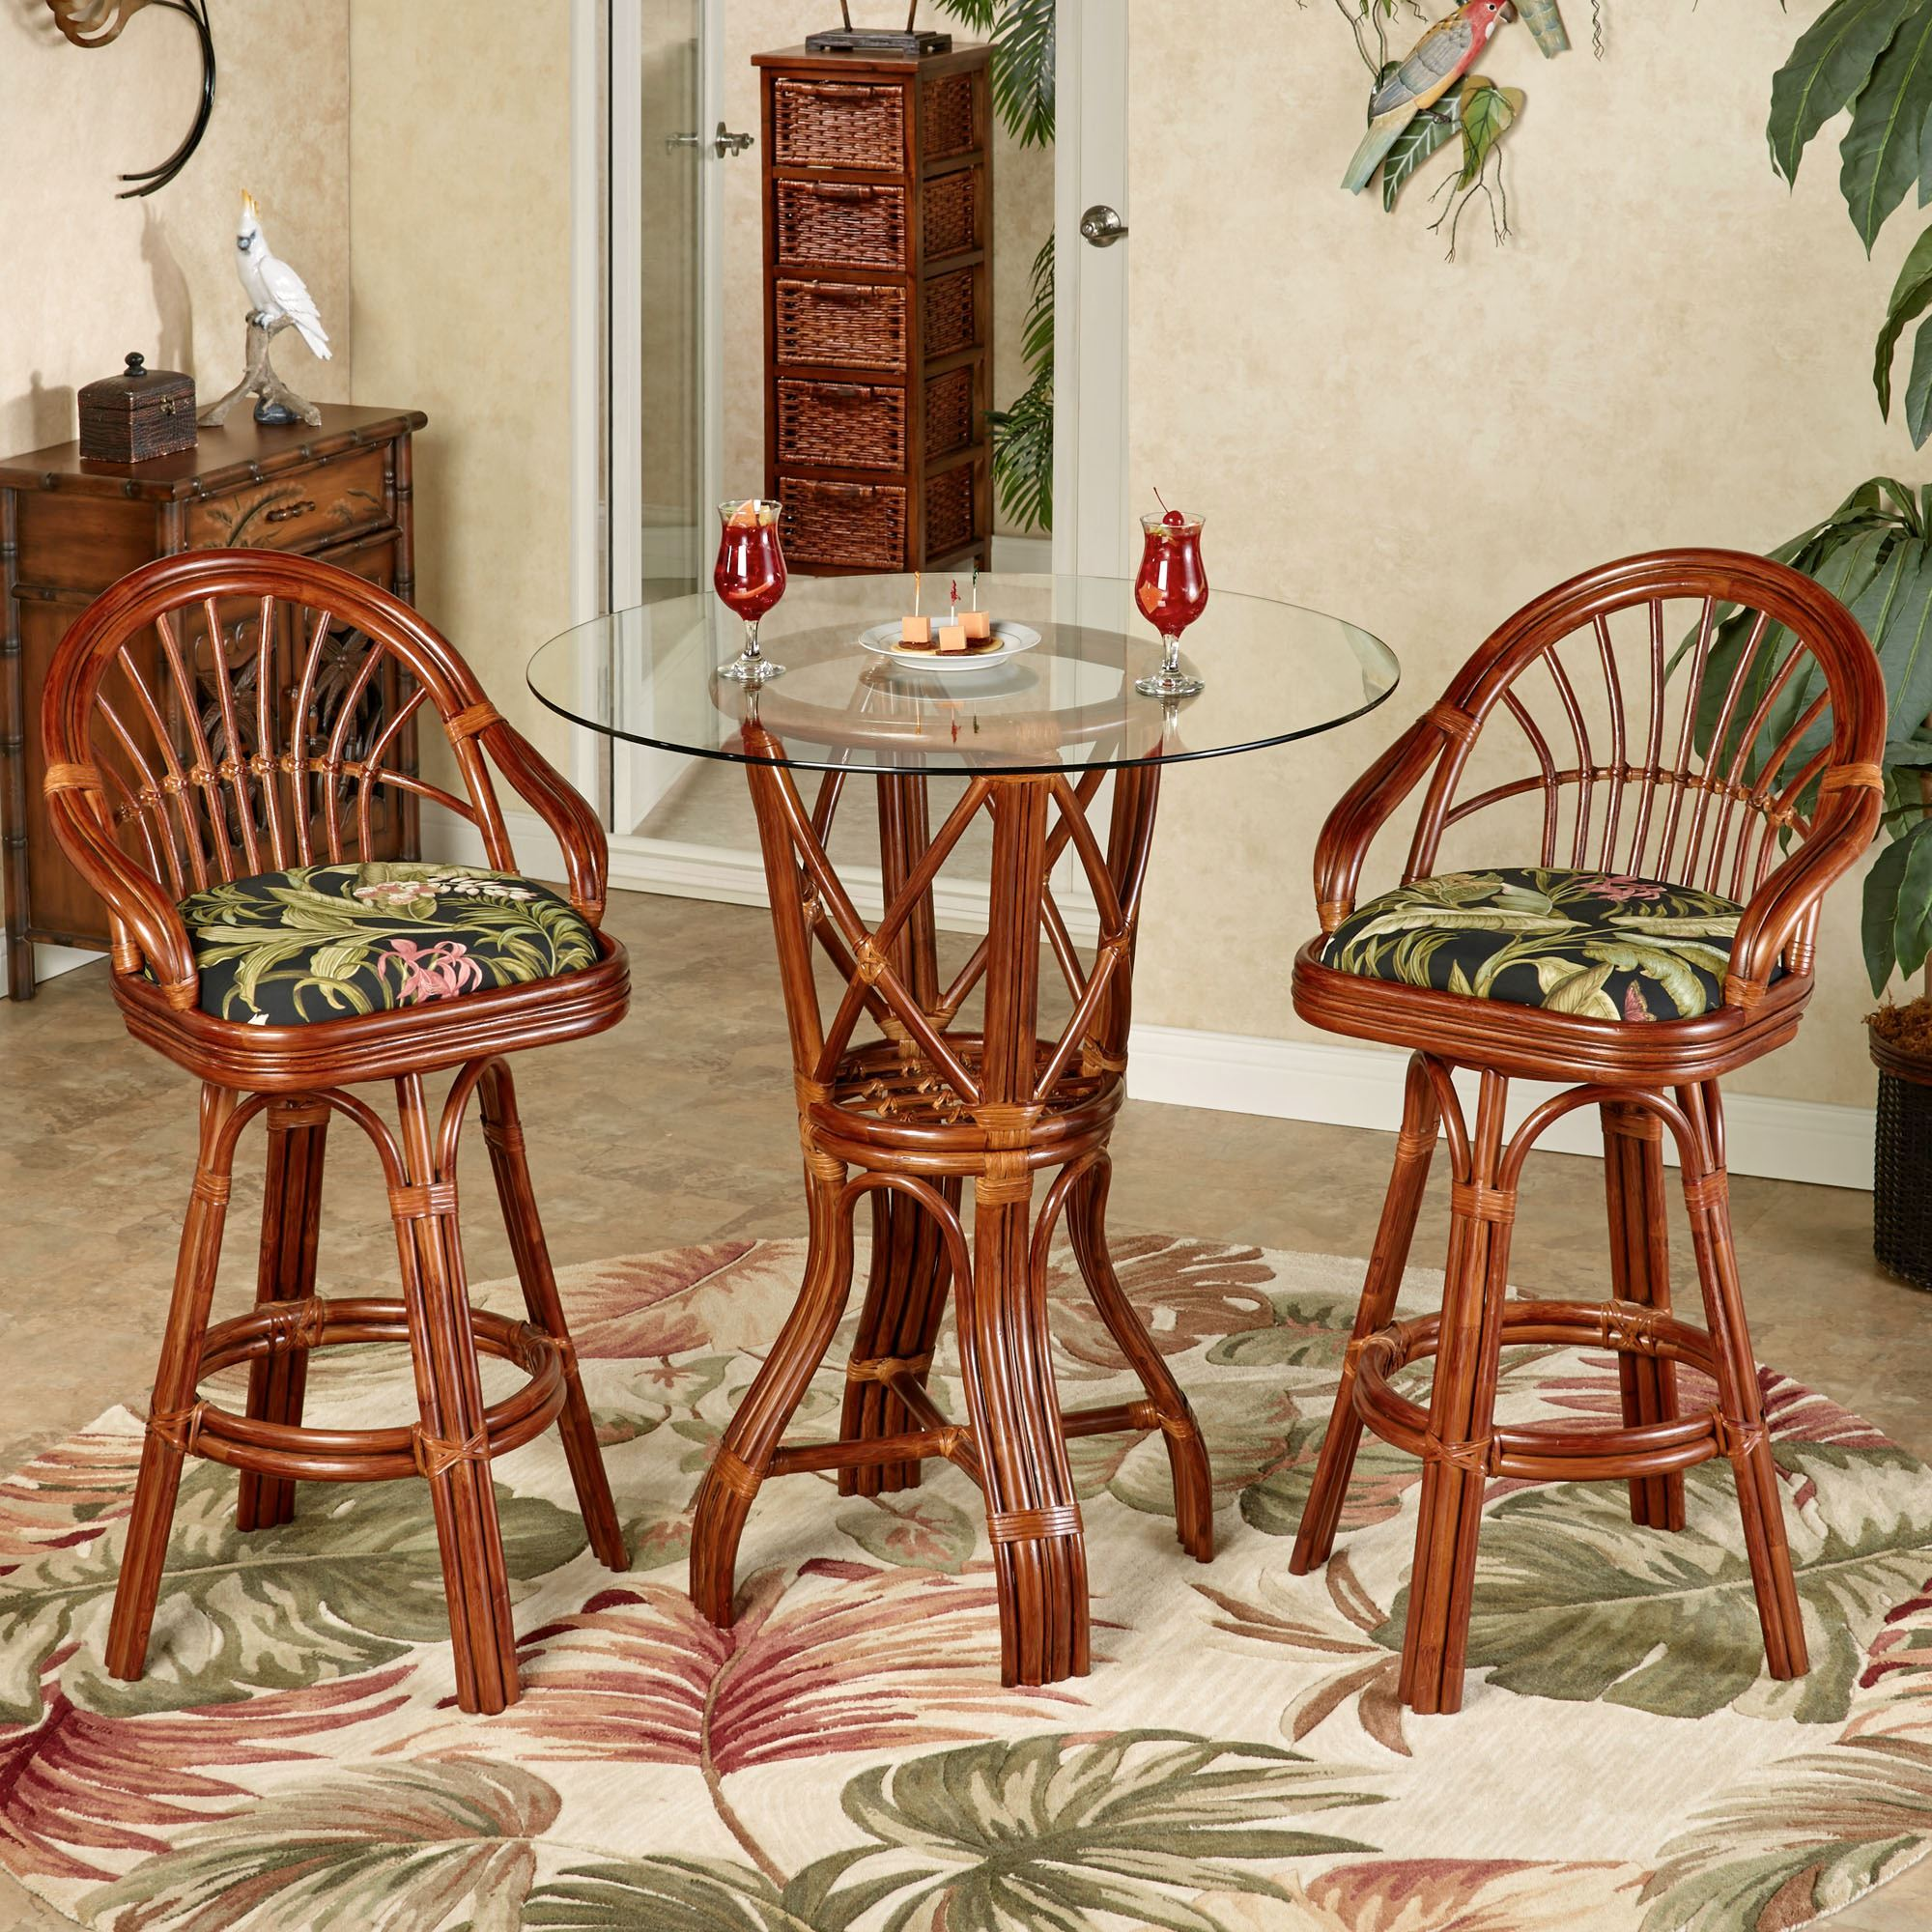 Leikela Wailea Coast Tropical Bistro Furniture Set